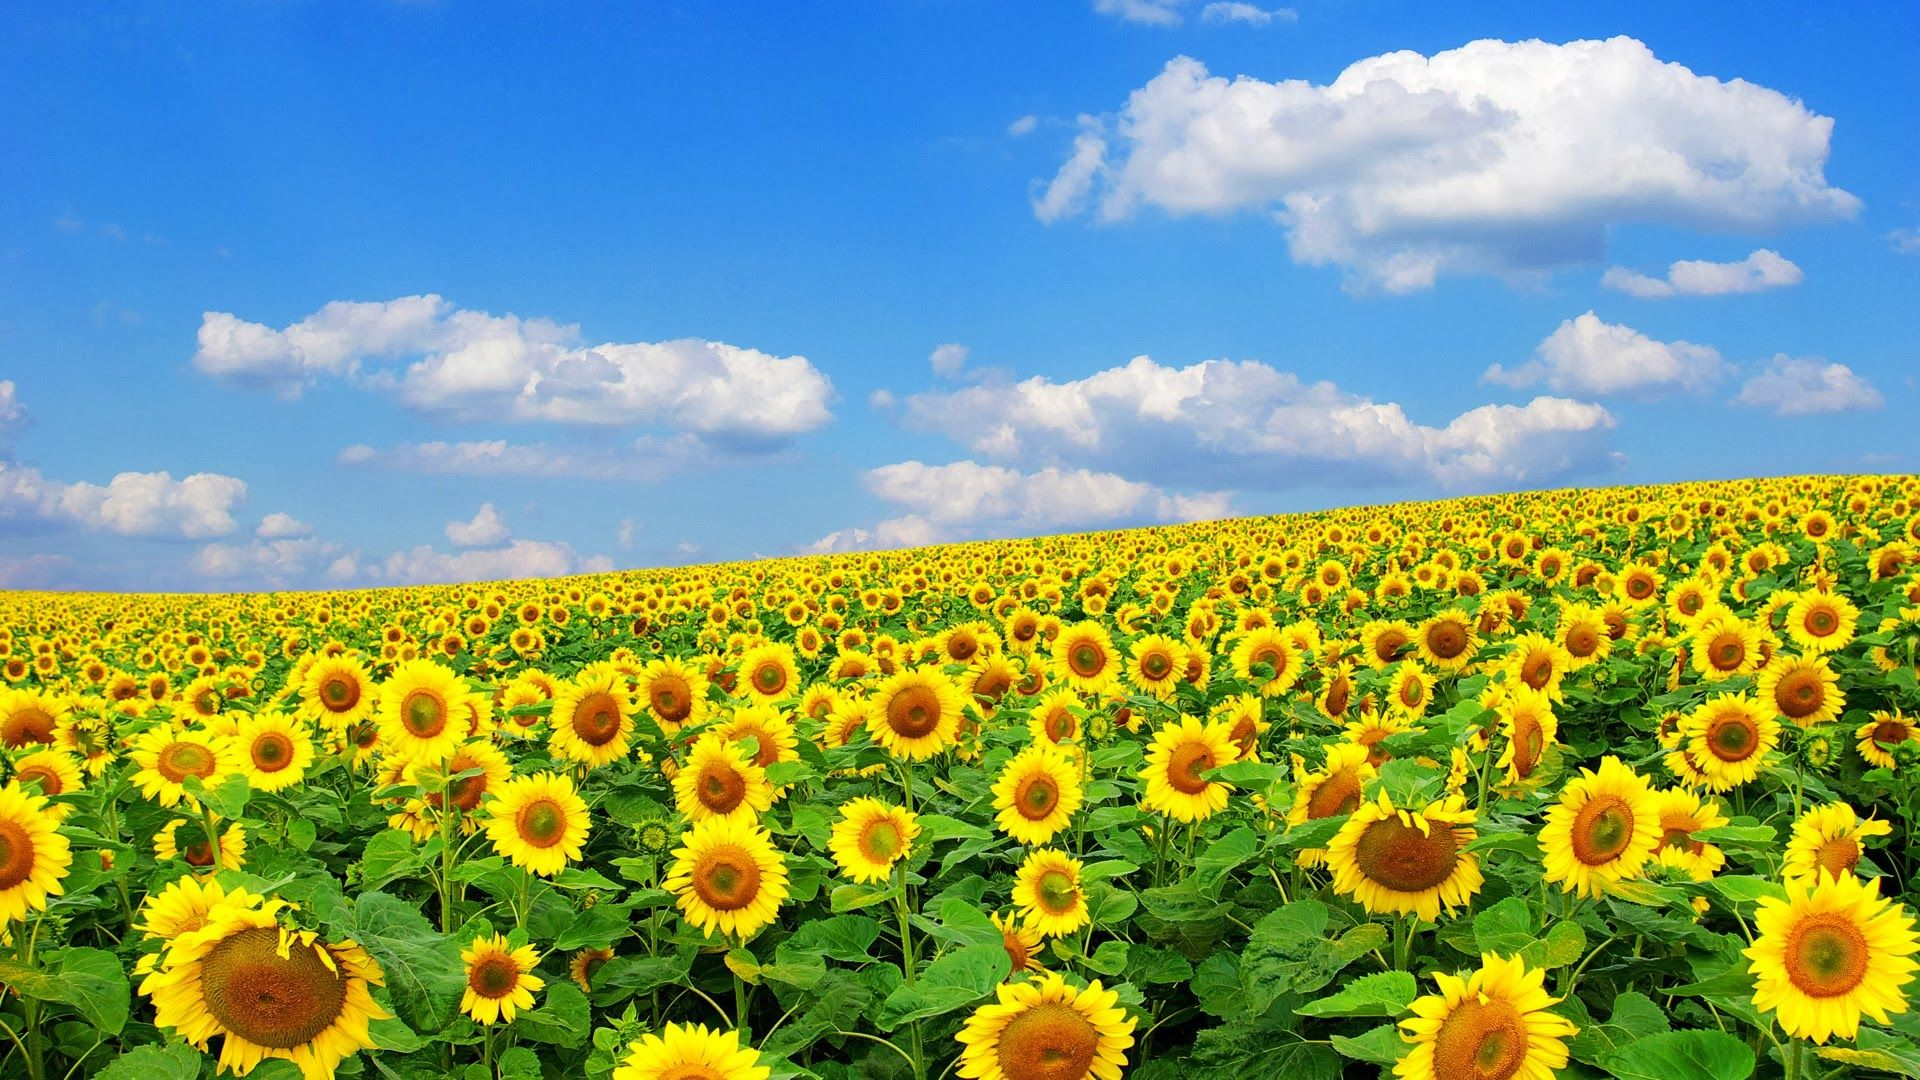 Campo De Girasoles Hd Buscar Con Google Flower Desktop Wallpaper Spring Flowers Flowers